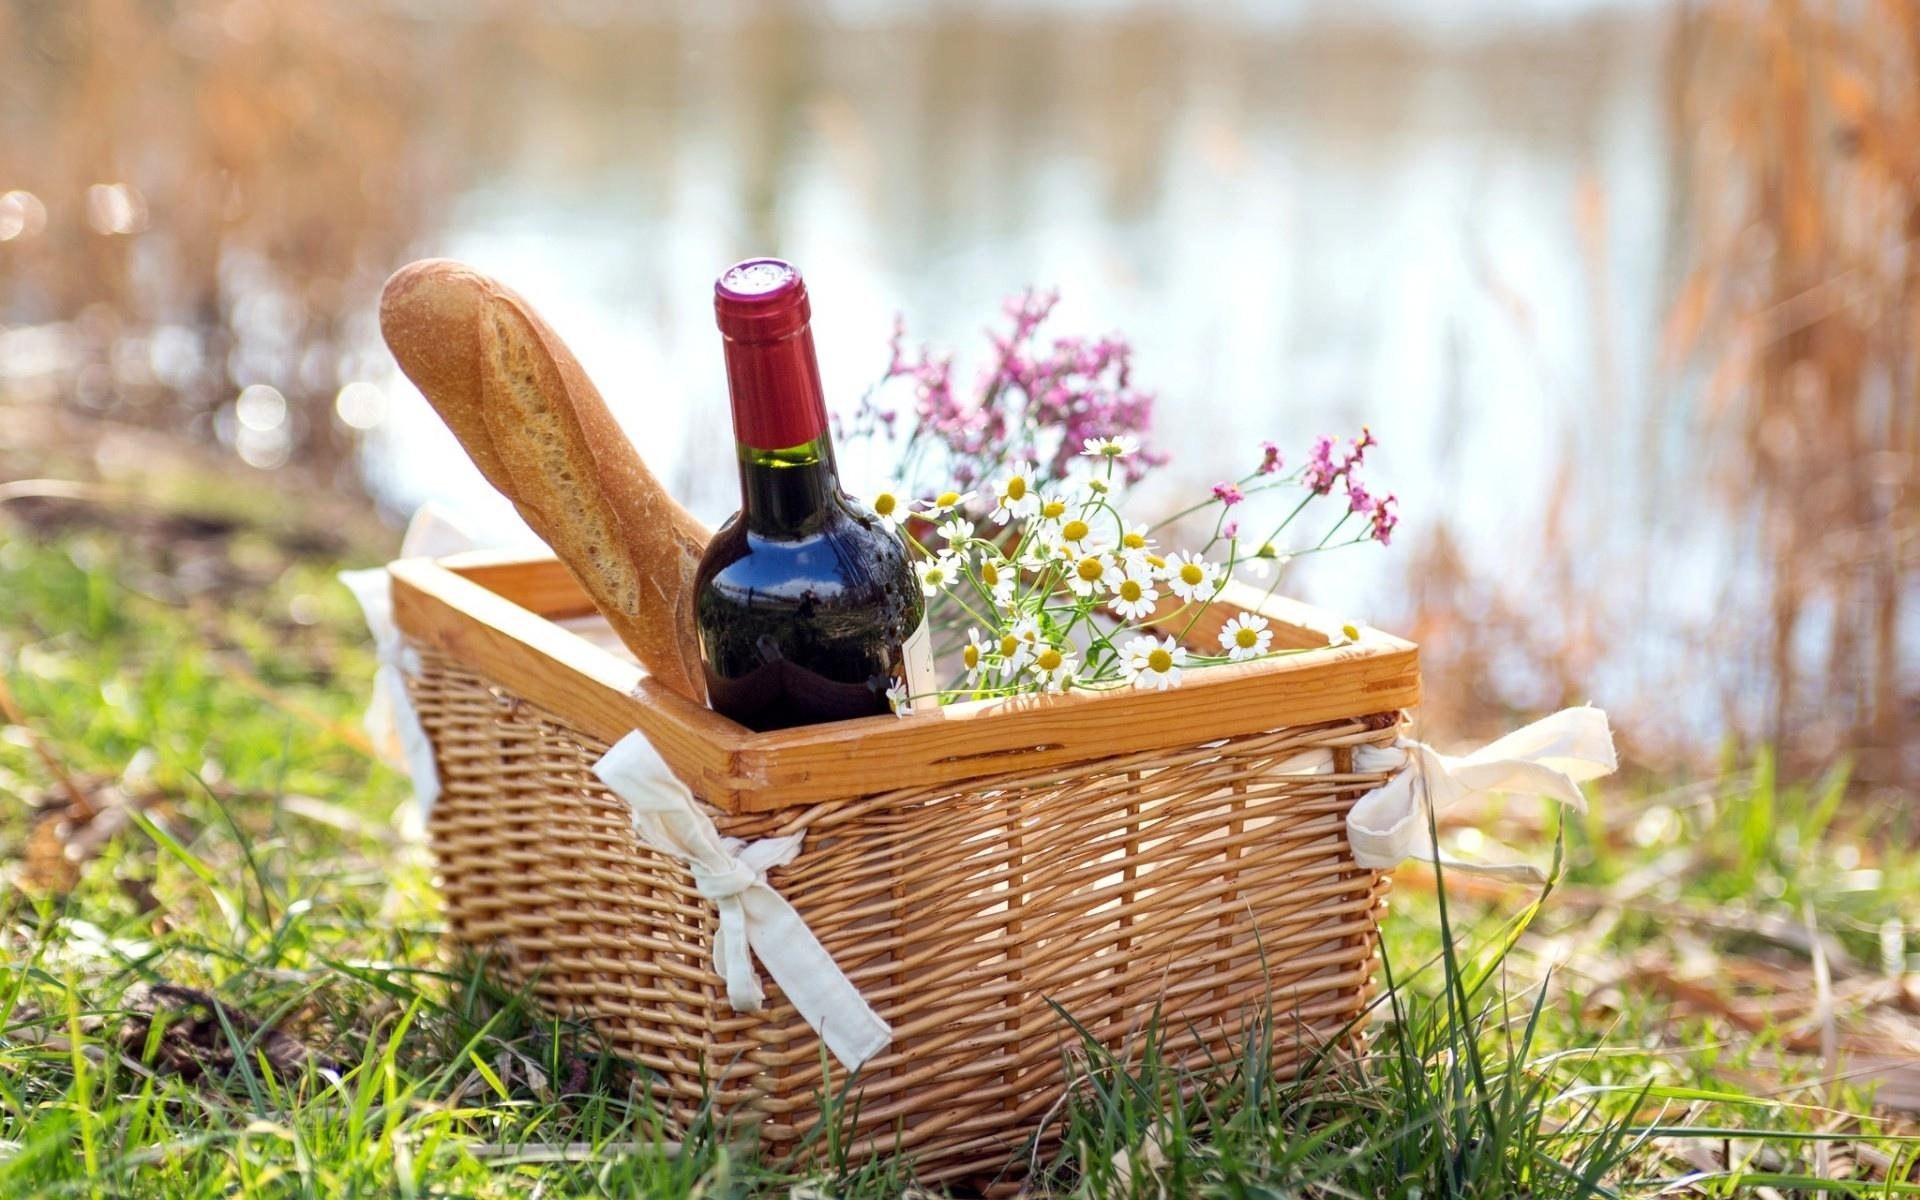 Picnic at 640 x 960 iPhone 4 size wallpapers HD quality